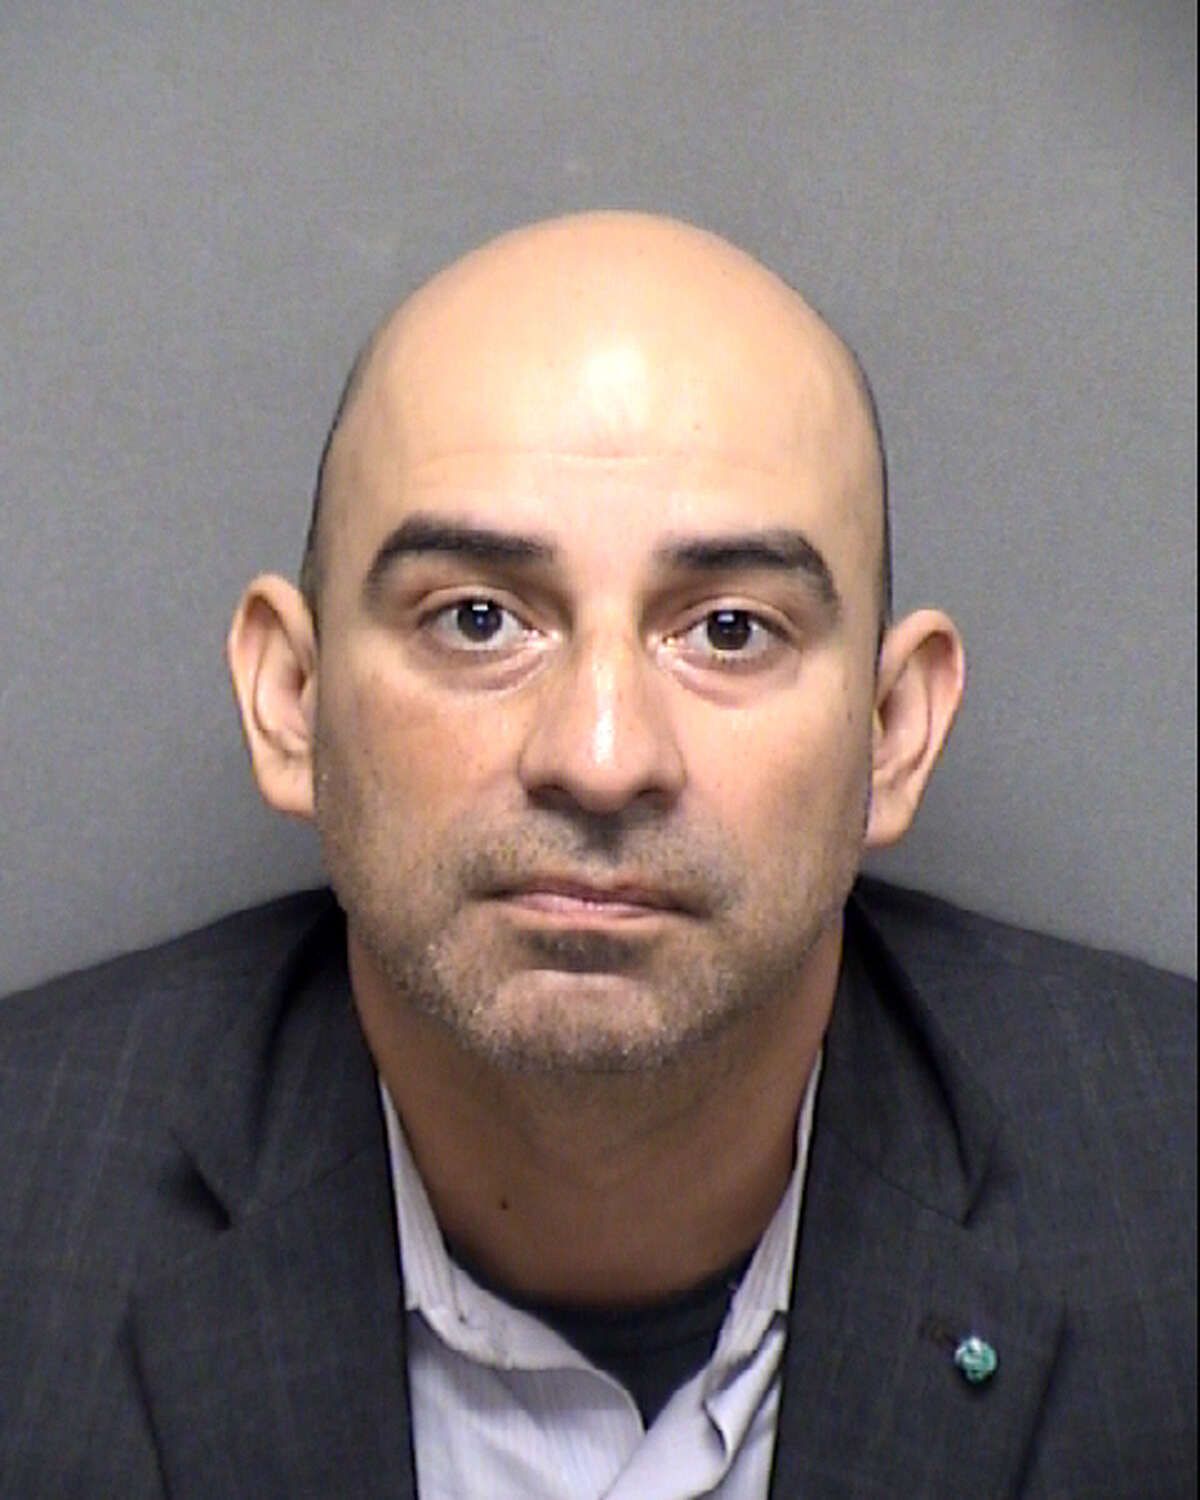 Despite being ordered to rehab, Bexar County Jail officials sent Johnny Villalobos to prison instead on Jan. 17, 2019.